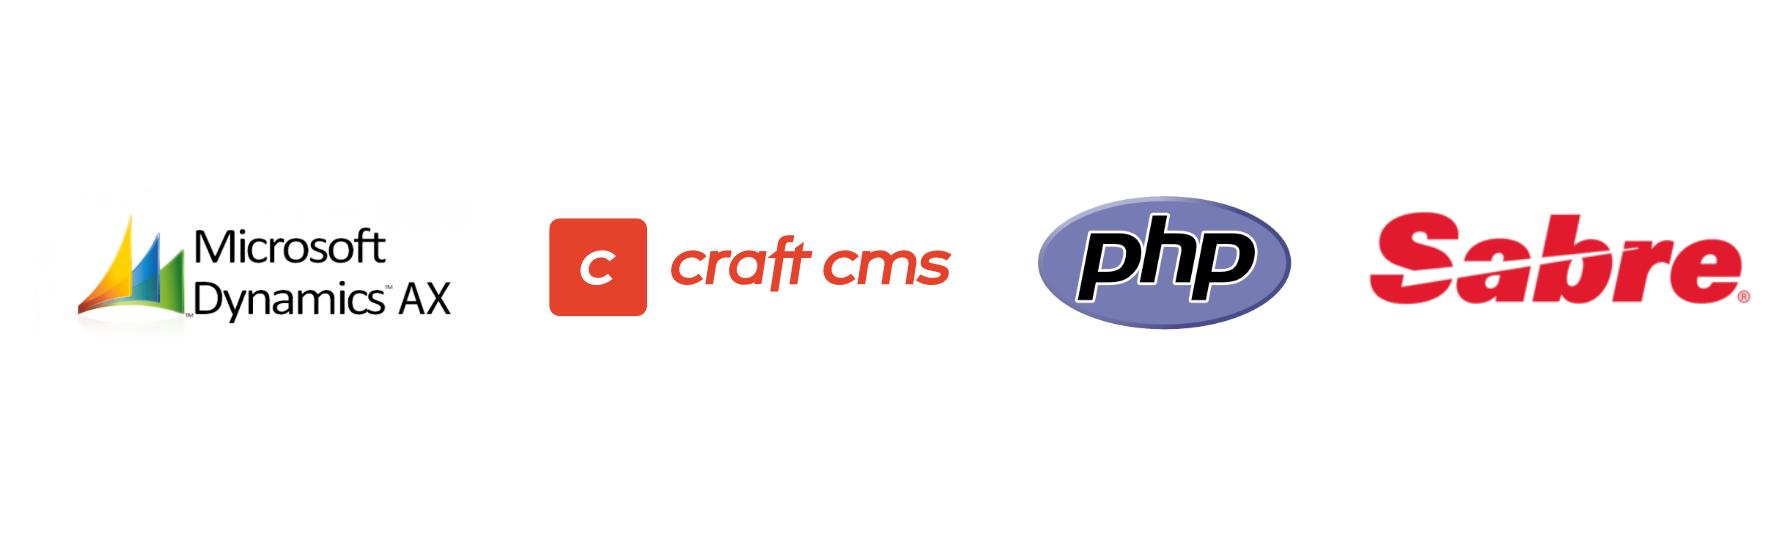 Logos for Microsoft Dynamics AX, Craft CMS, PHP, and Sabre